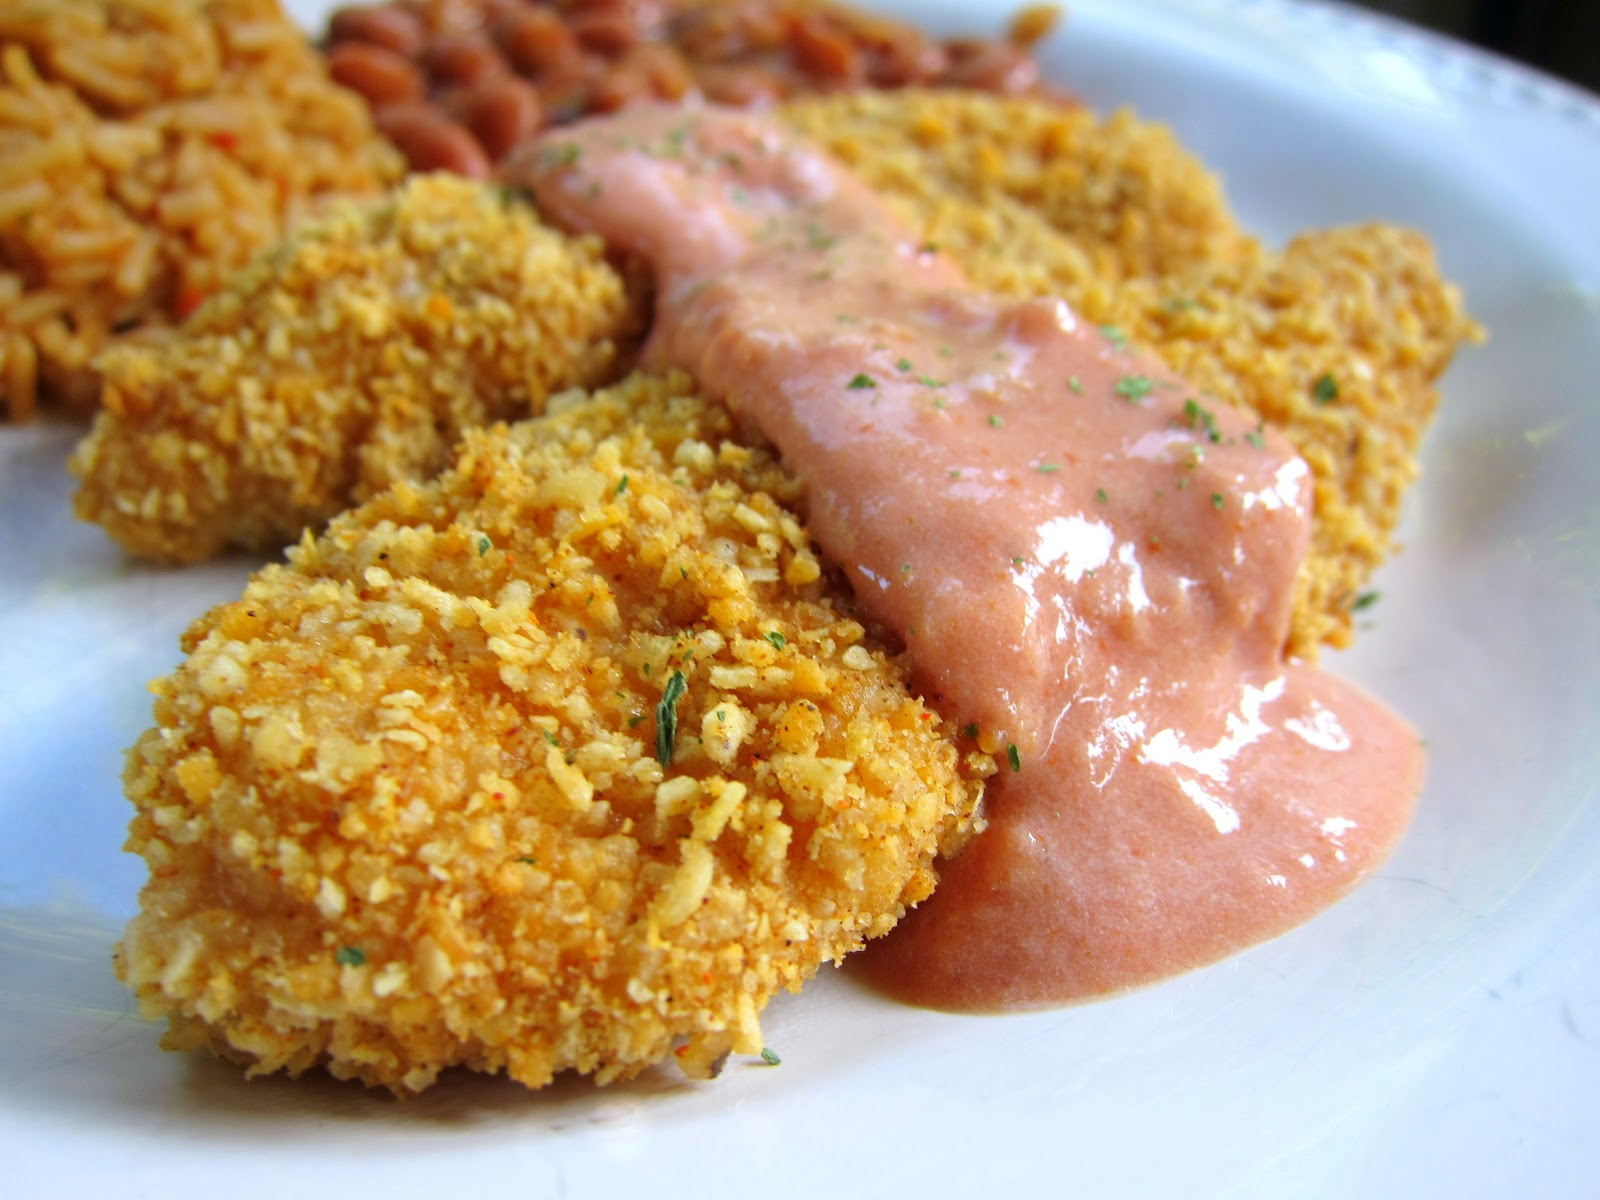 Taco Crusted Chicken Fingers - baked chicken tenders coated in taco ...